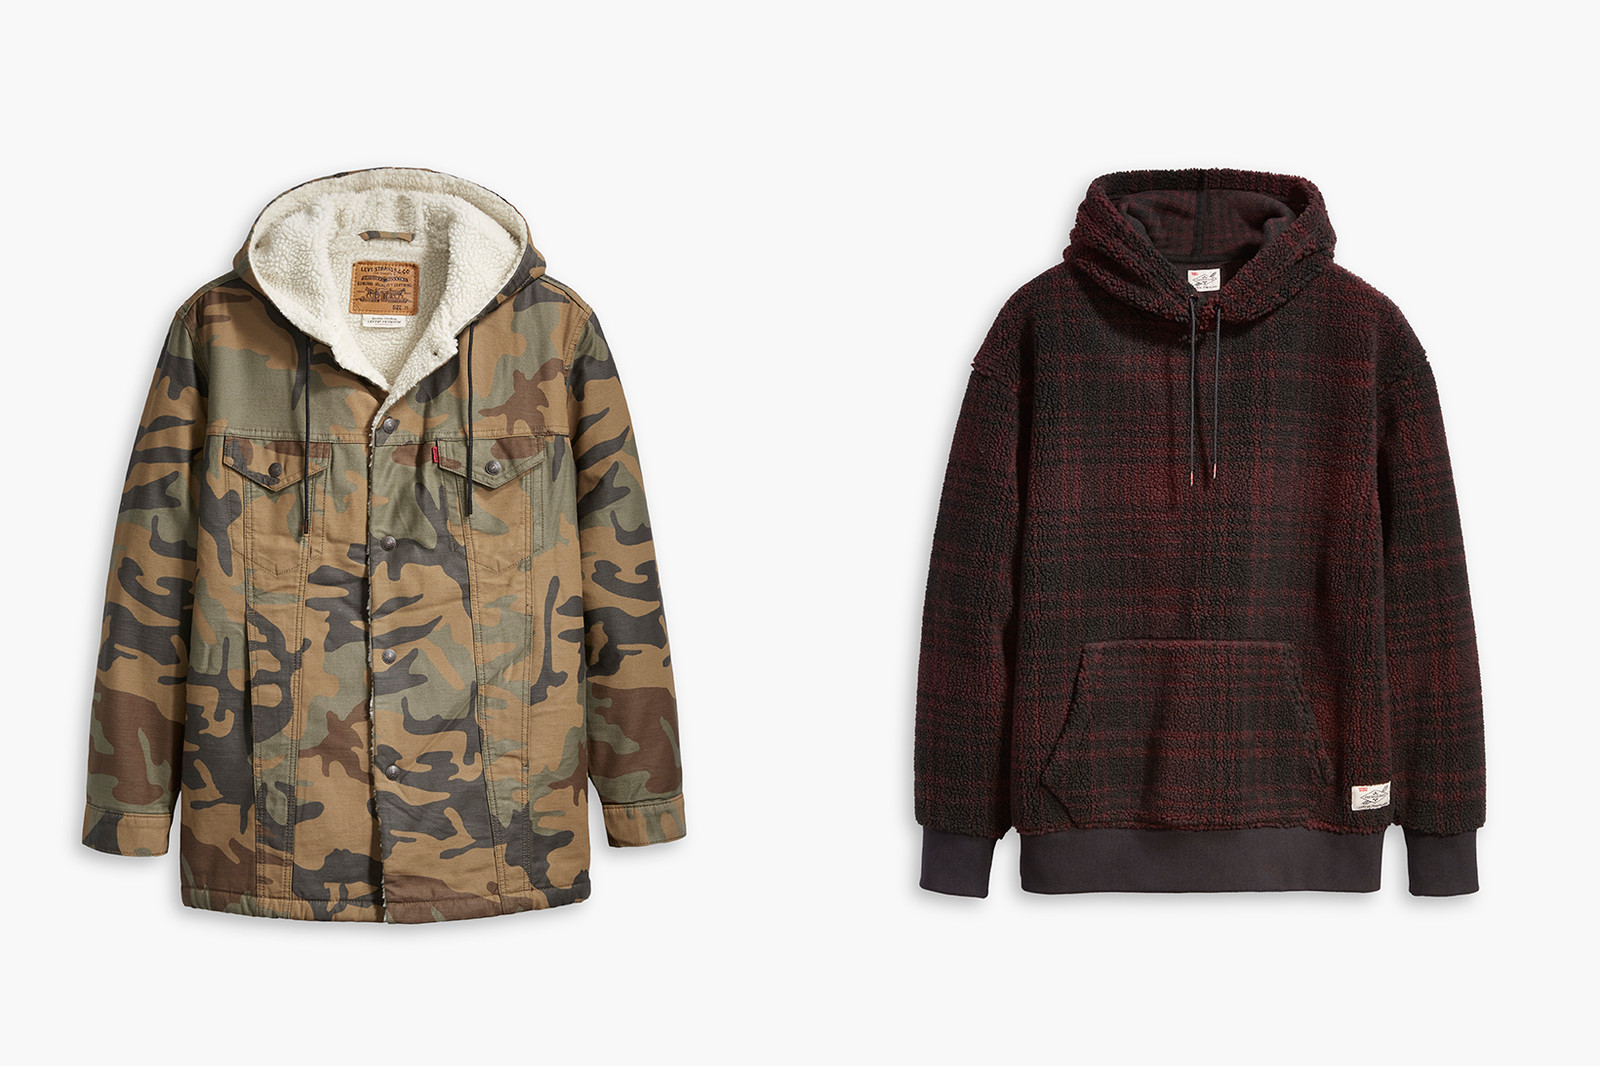 Justin Timberlake x Levi's Fresh Leaves Collection Reveal 501 Hoodie Camo Workwear